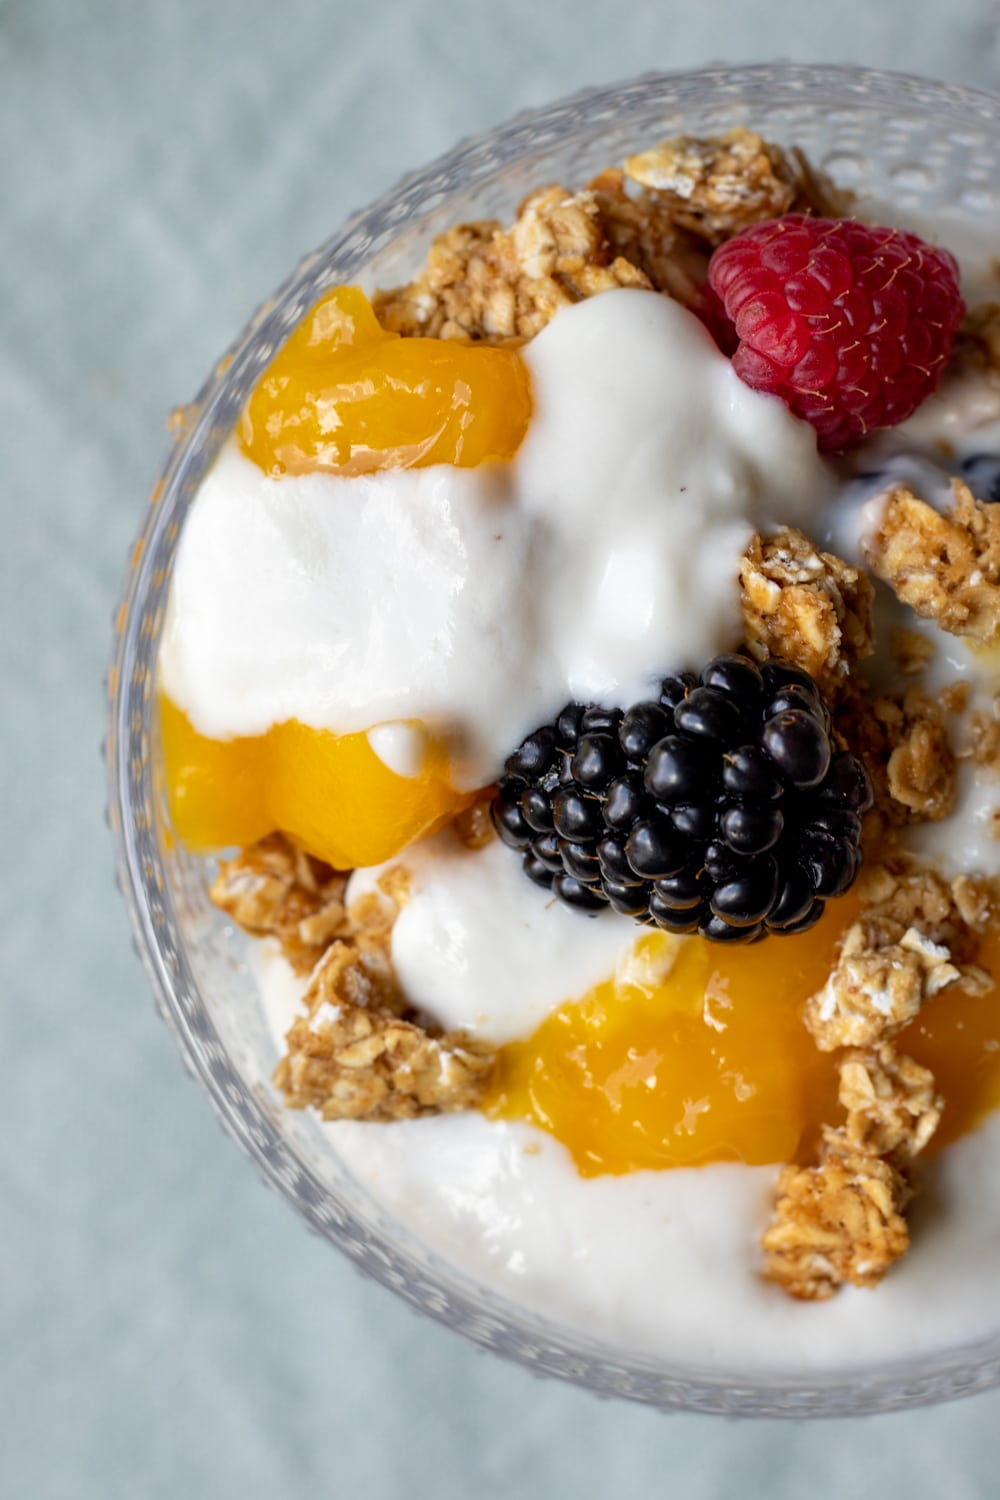 overhead view of yogurt, berries, and granola in a decorative glass bowl